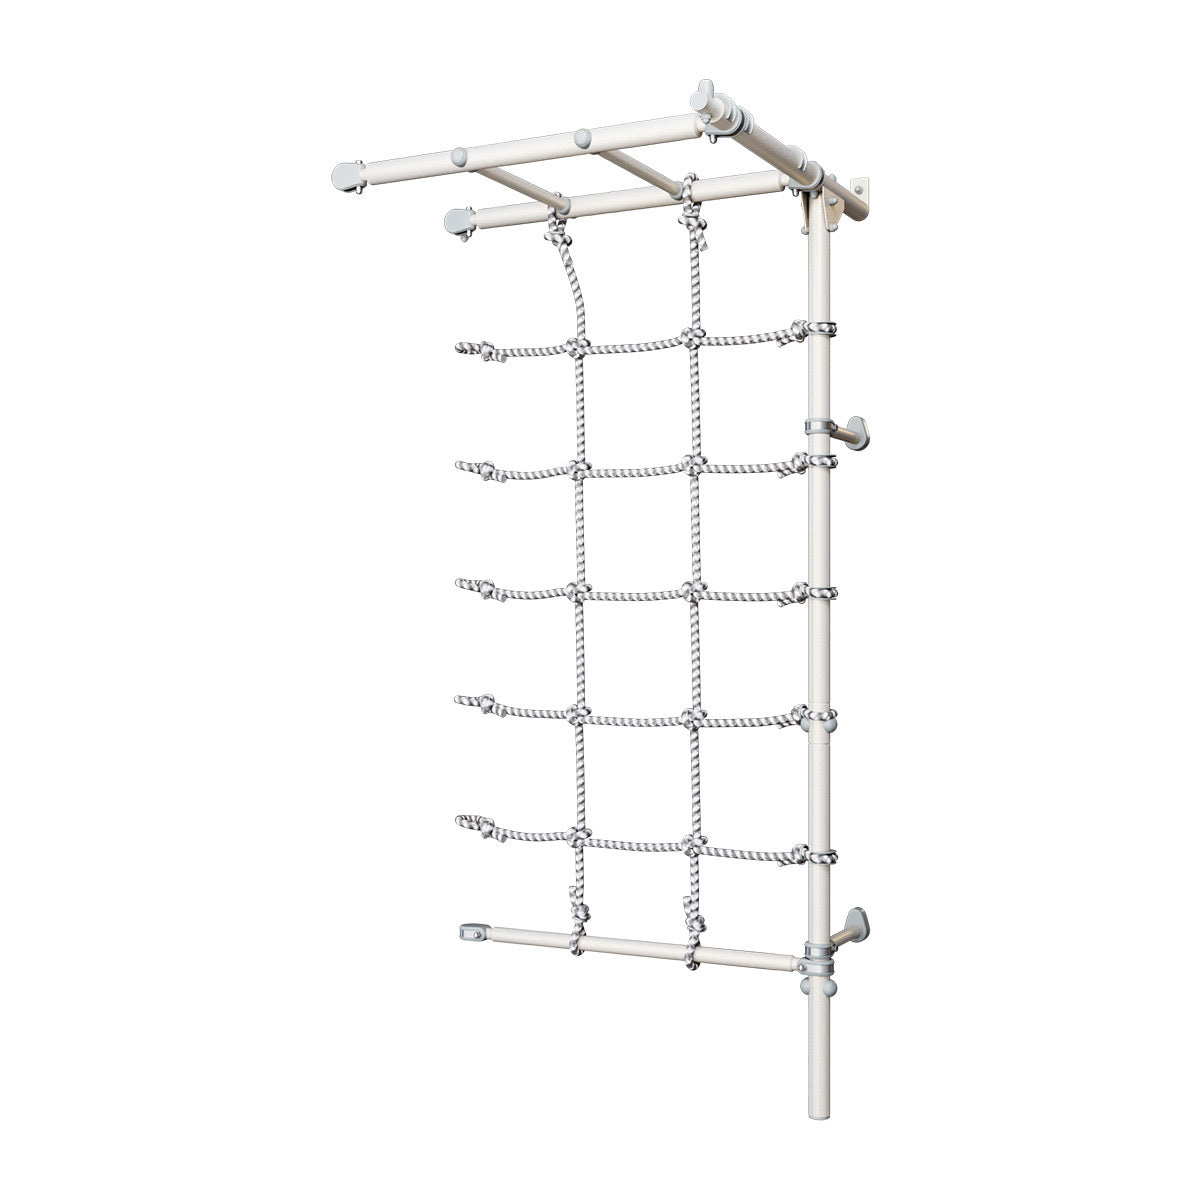 Wall - Mounted Monkey Bars Extension - Brainrich Kids